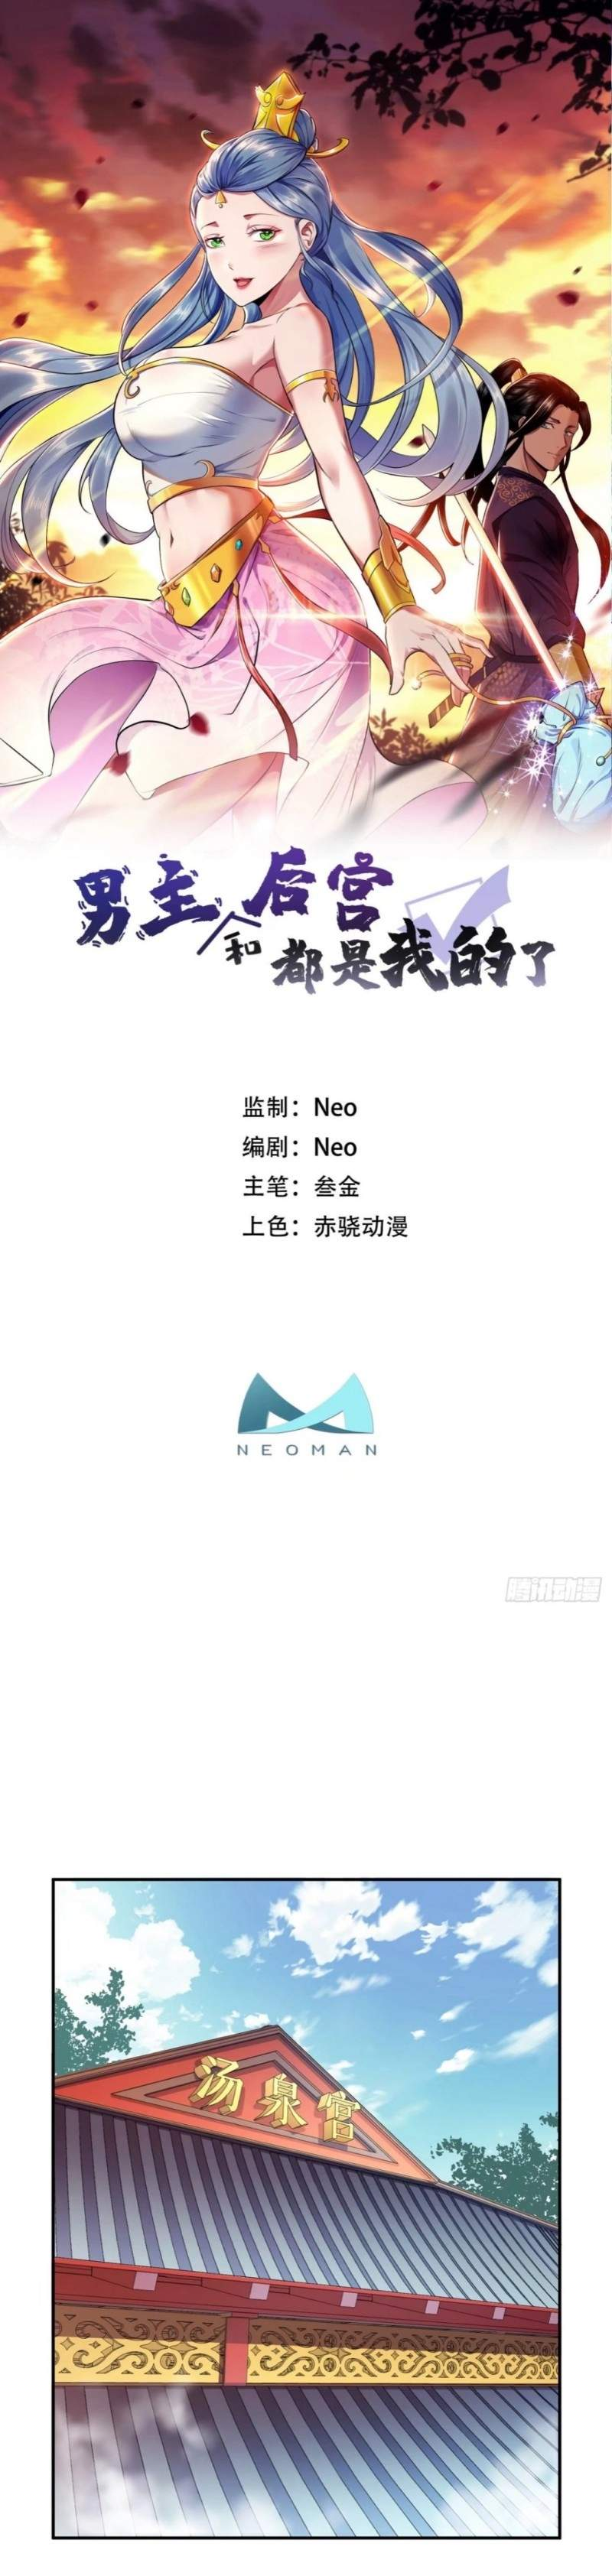 The Hero and The Harem are Mine Now Chapter 10